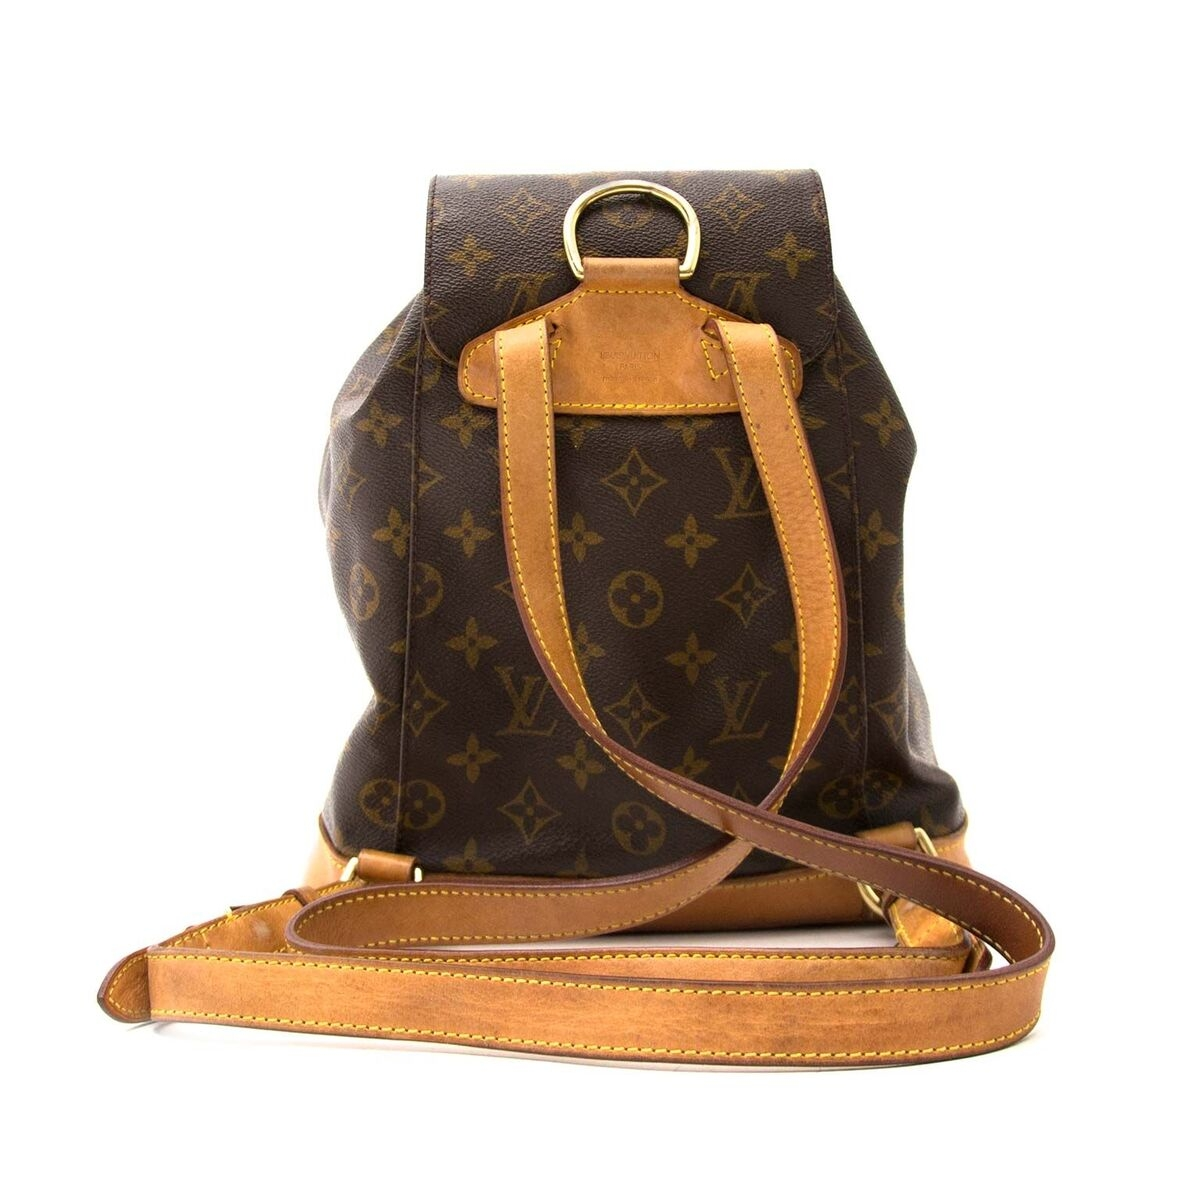 ... Koop authentieke tweedehands Buy an authentic secondhand Louis Vuitton  Monogram Montsouris MM rugzak at the right 4fac558b4e967